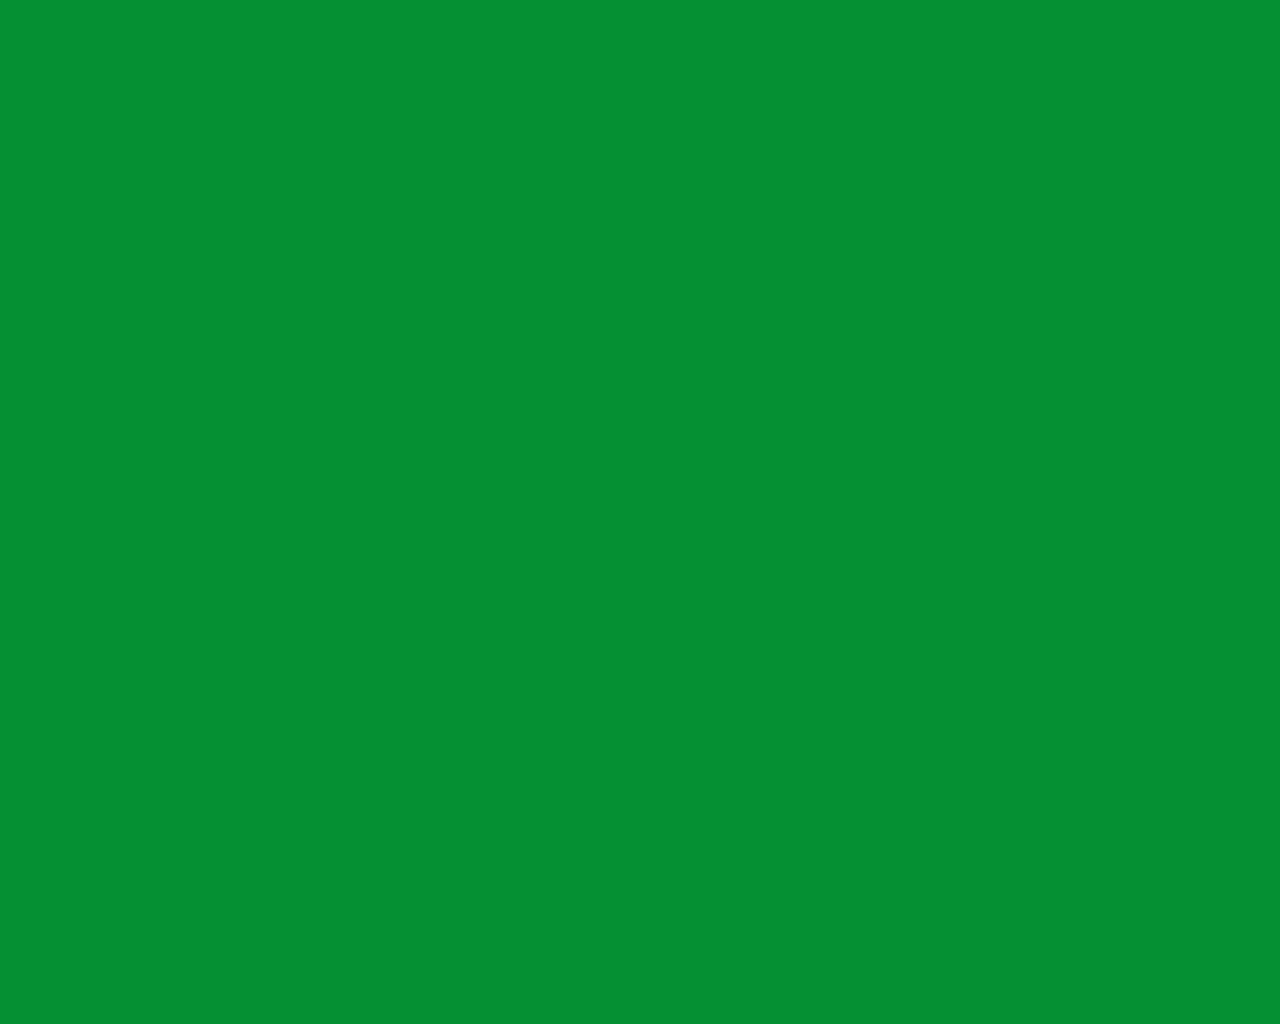 1280x1024 North Texas Green Solid Color Background